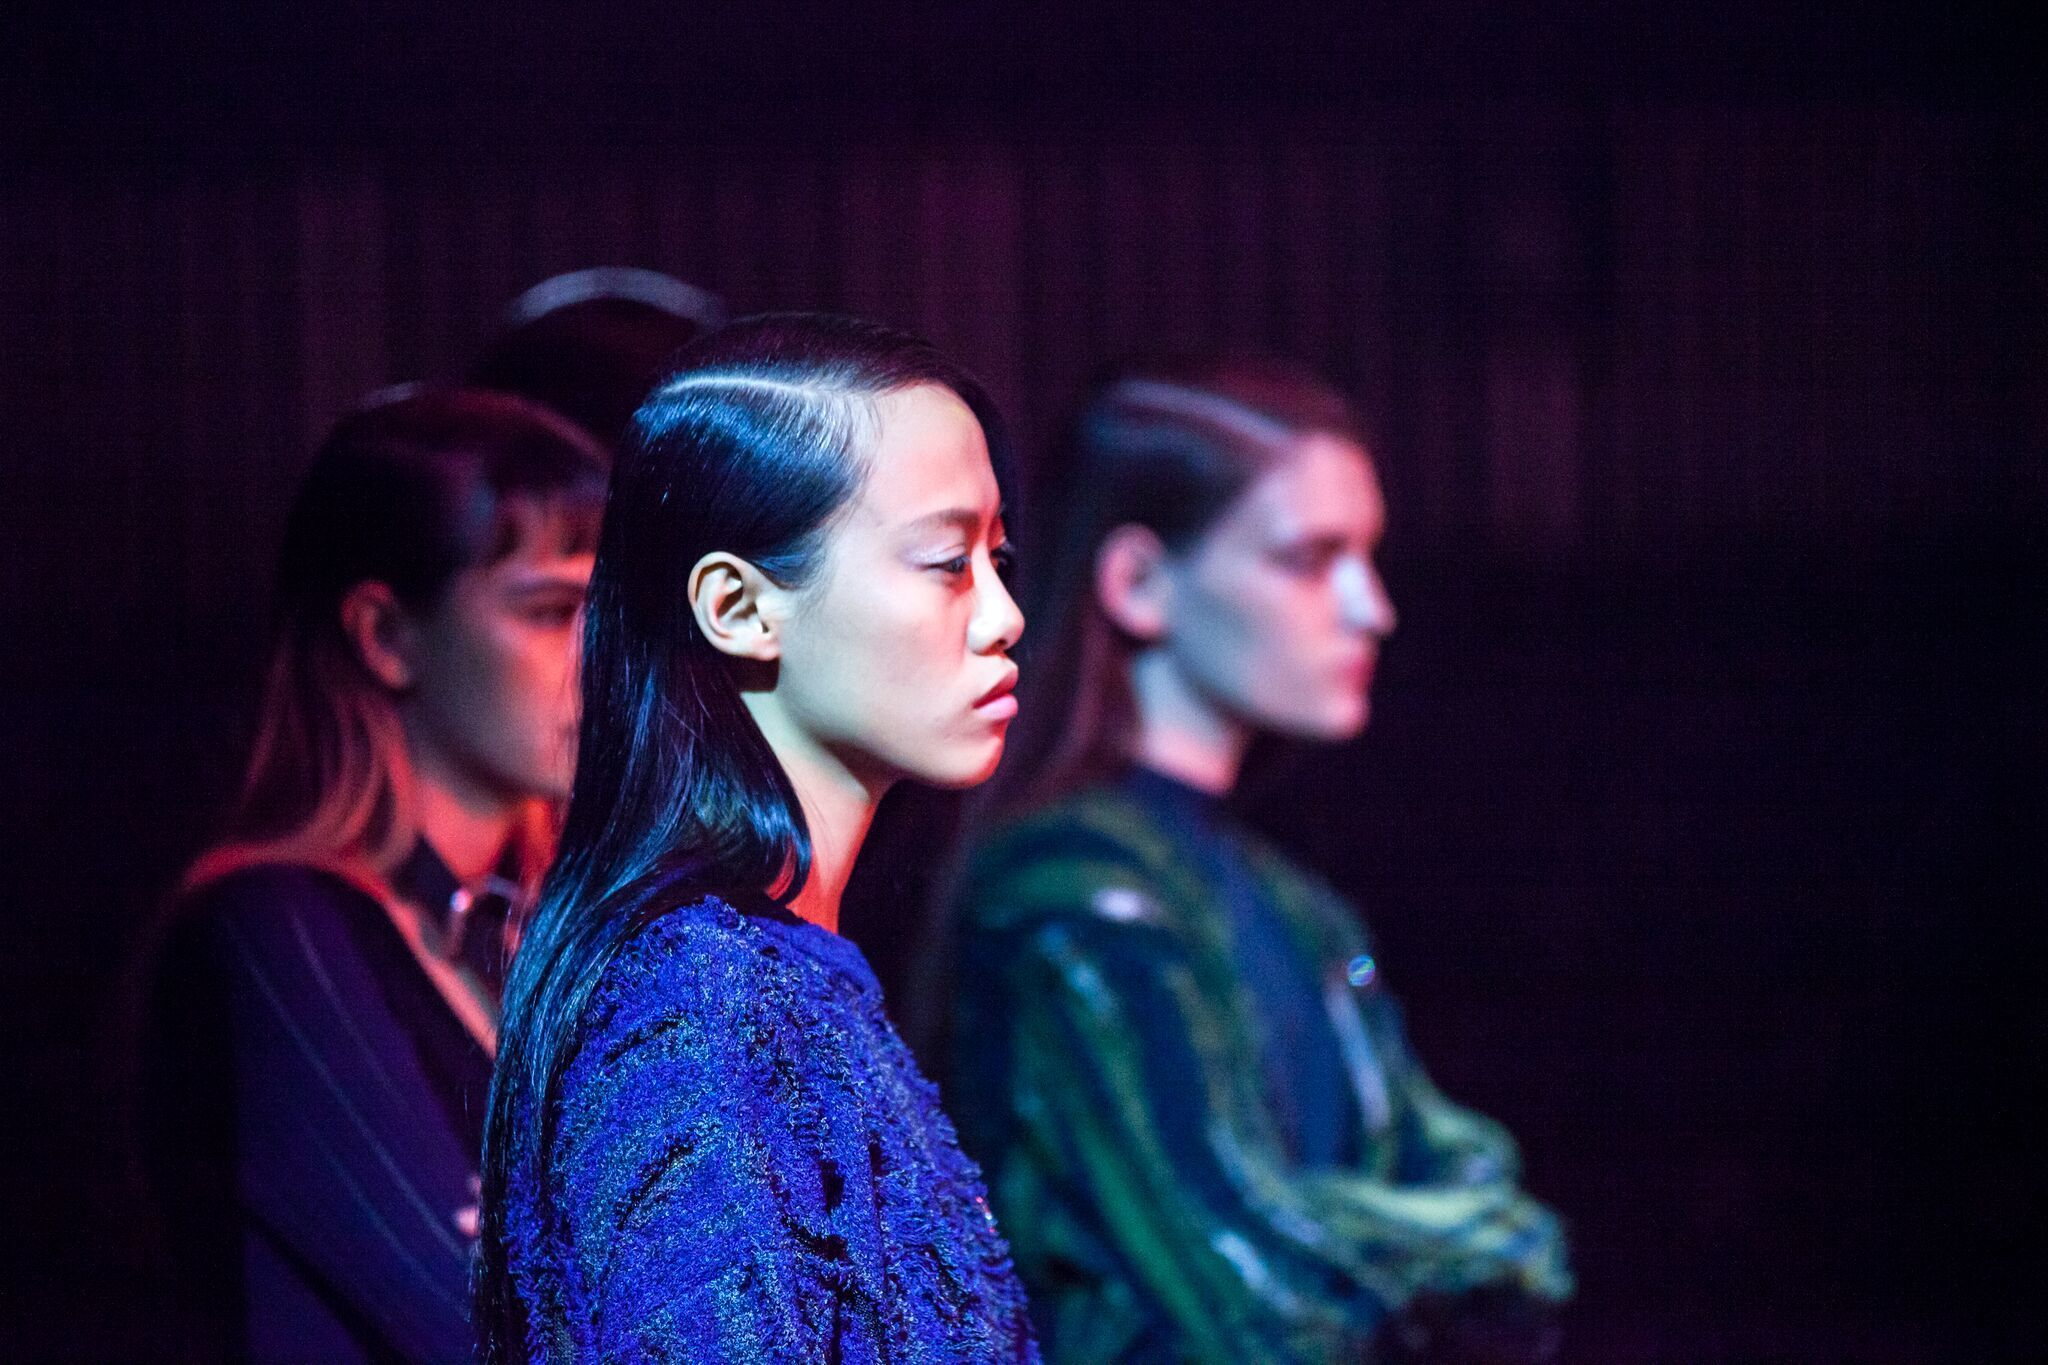 A super-low side part and hair pushed behind the ears are part of the runway looks for Opening Ceremony.